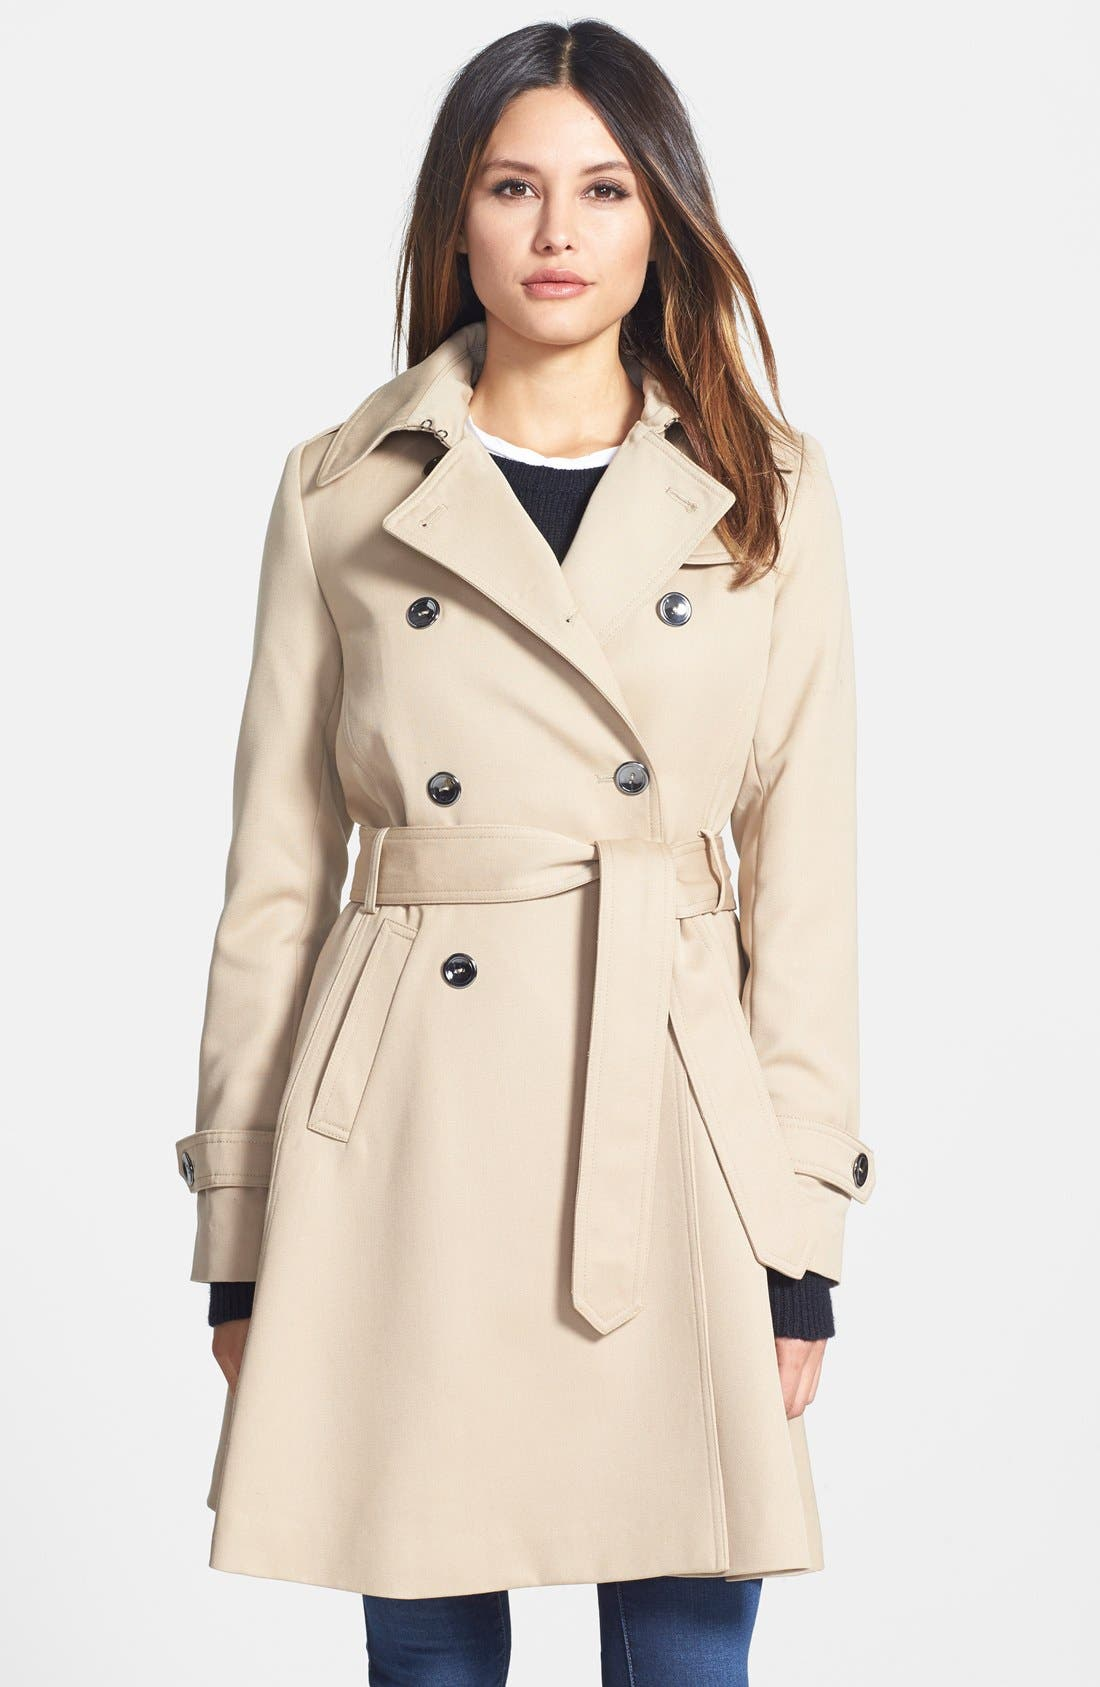 Alternate Image 1 Selected - Trina Turk 'Gwyneth' Flared Wool Gabardine Trench Coat (Regular & Petite)